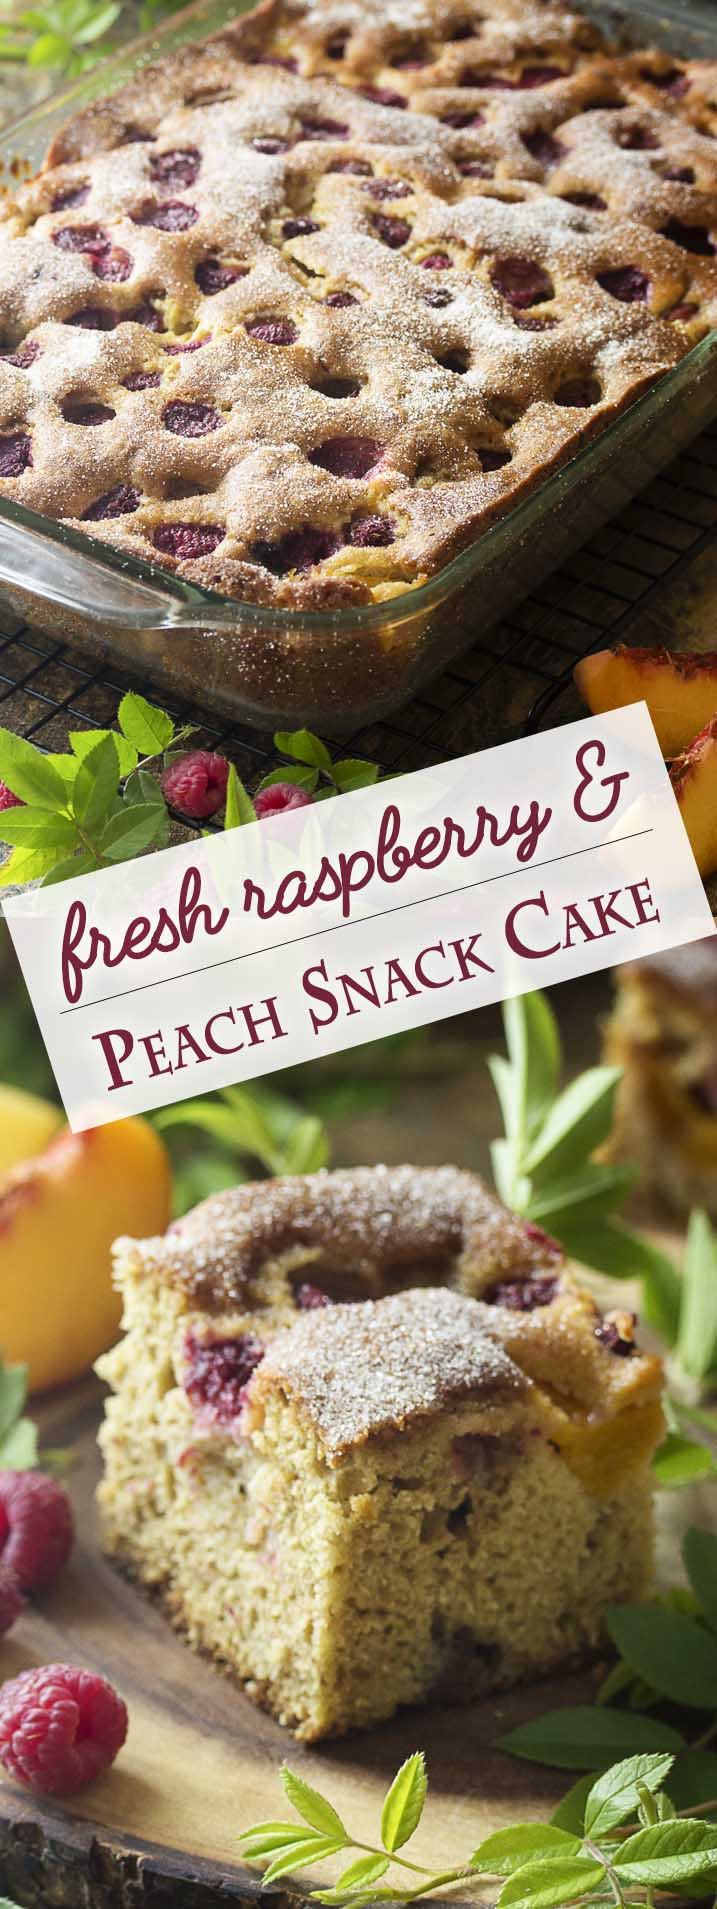 This easy fresh peach cake studded with raspberries is full of fruit flavor, needs no mixer, and freezes beautifully! A simple cinnamon sugar topping finishes it off. Great for breakfast or for dessert. | justalittlebitofbacon.com